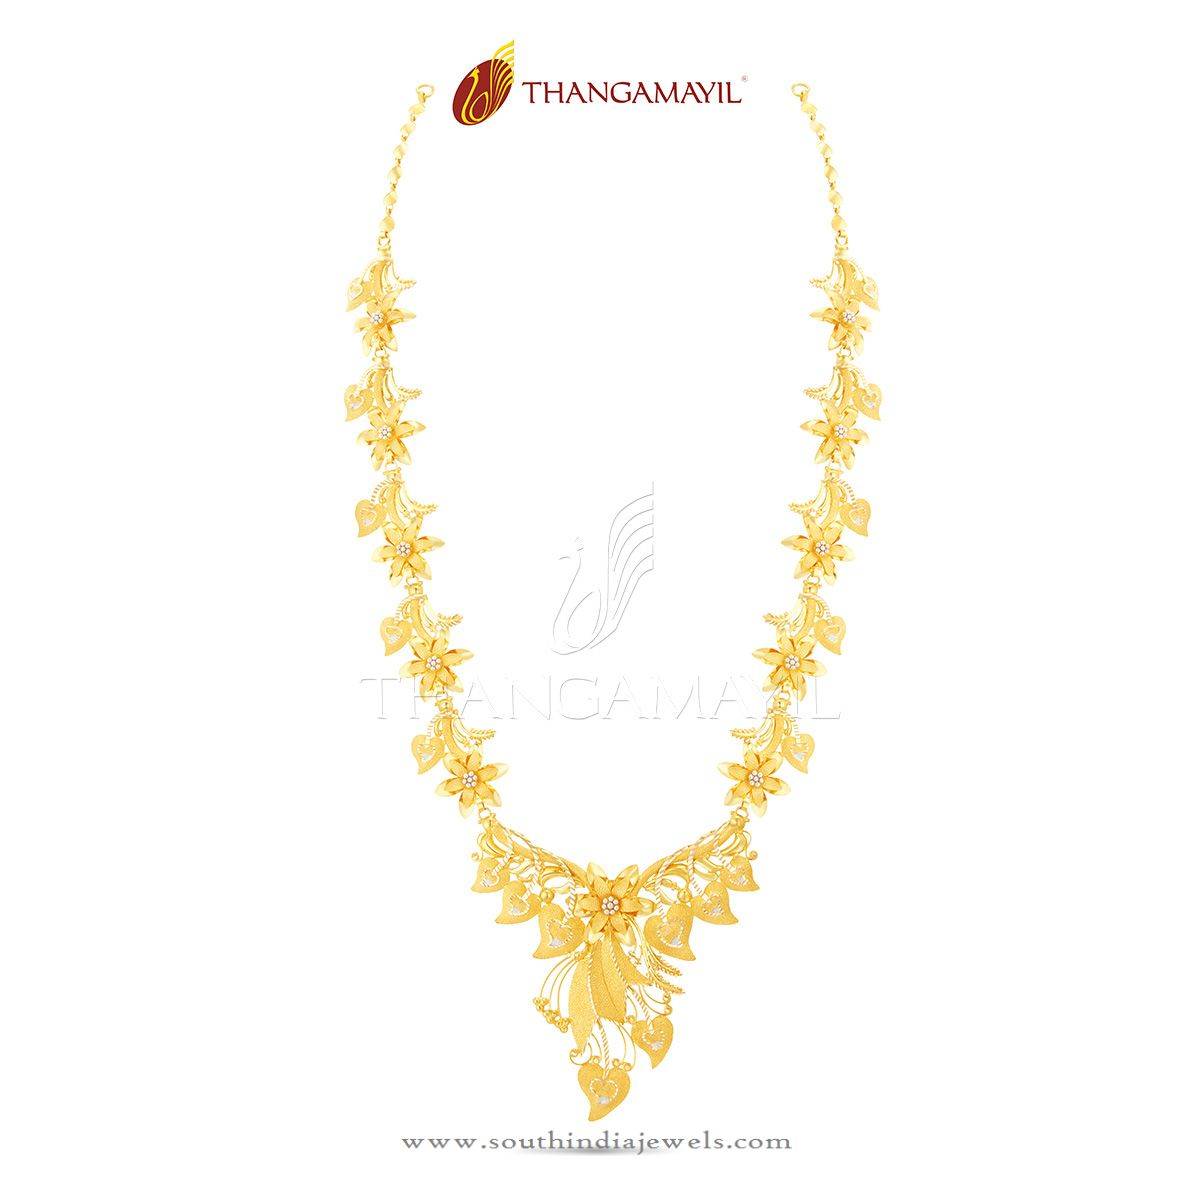 22K Gold Indian Floral Necklace Design ~ South India Jewels